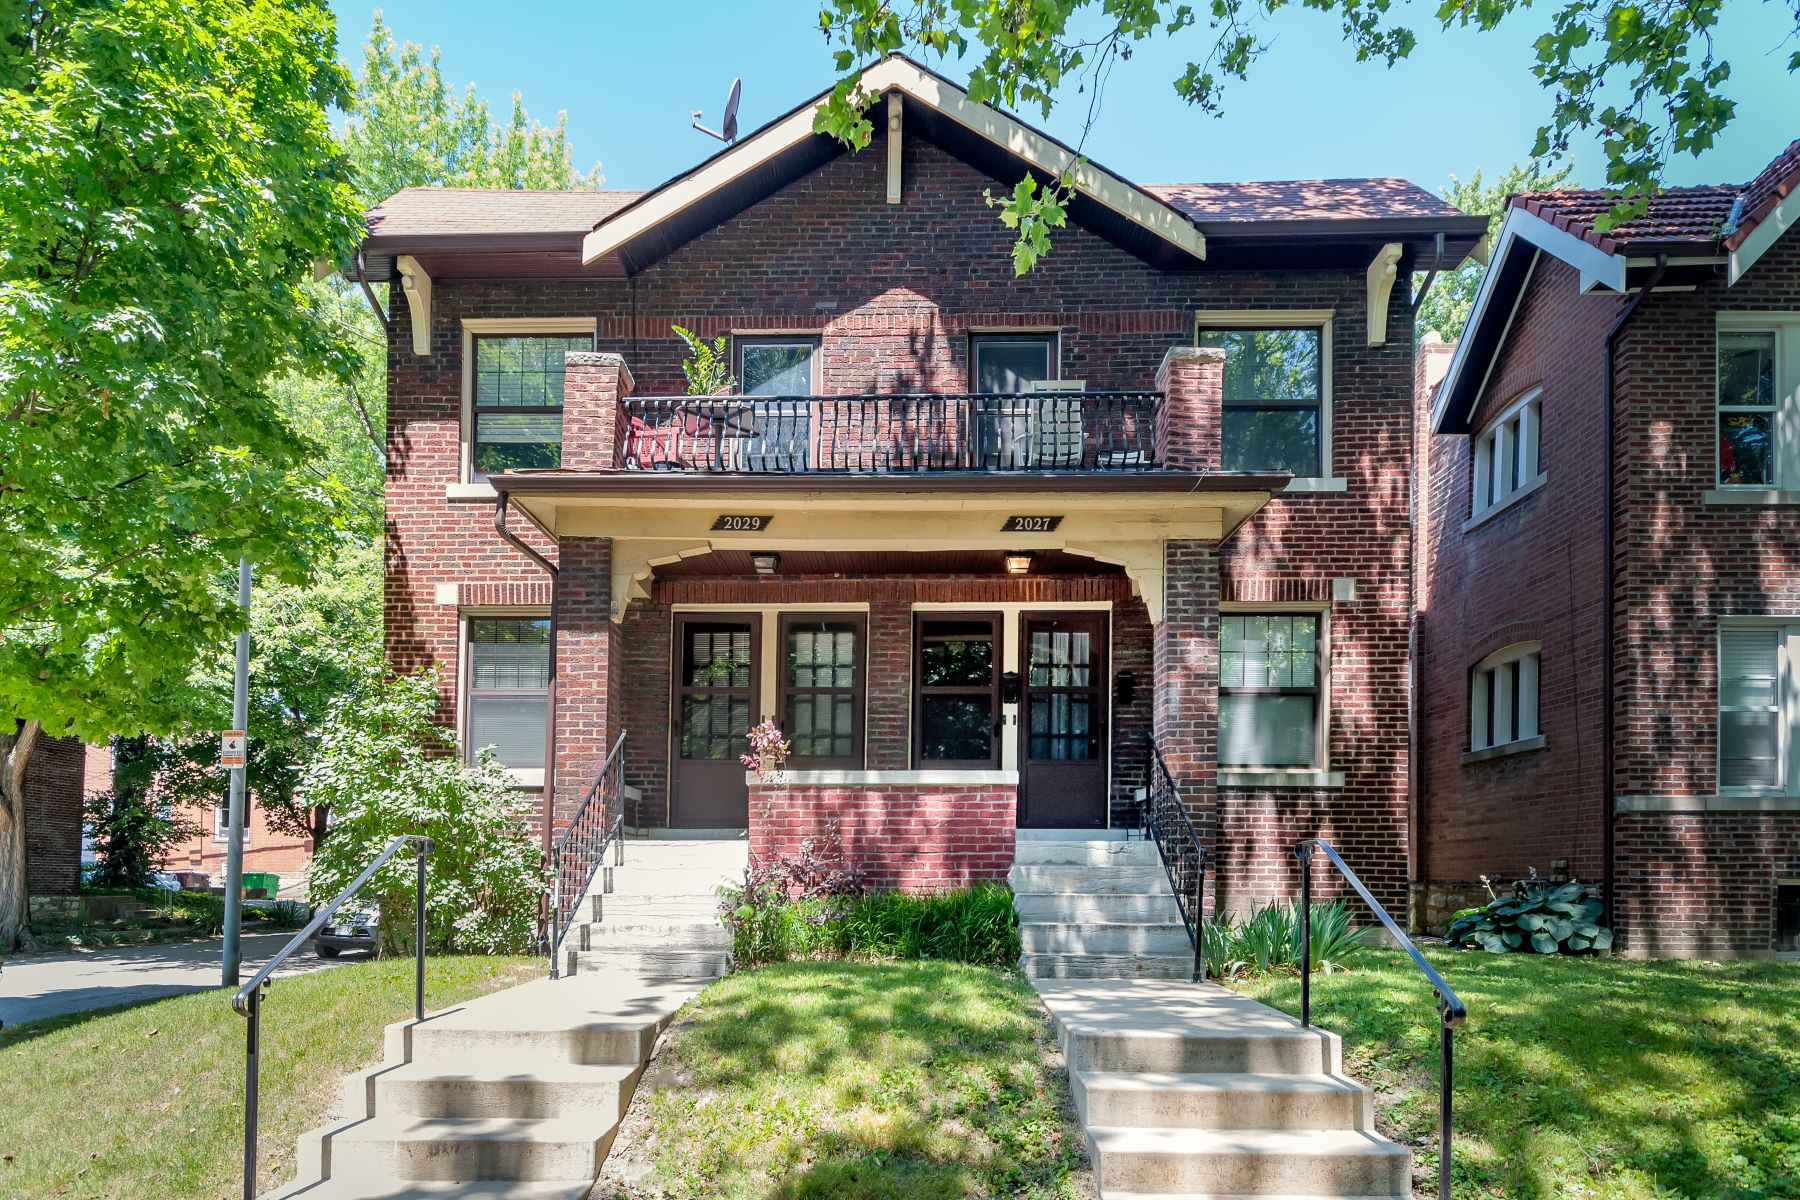 Multi-Family Homes for Sale at Beautiful Southwest Garden Multi-Family 2027 Alfred Avenue St. Louis, Missouri 63110 United States